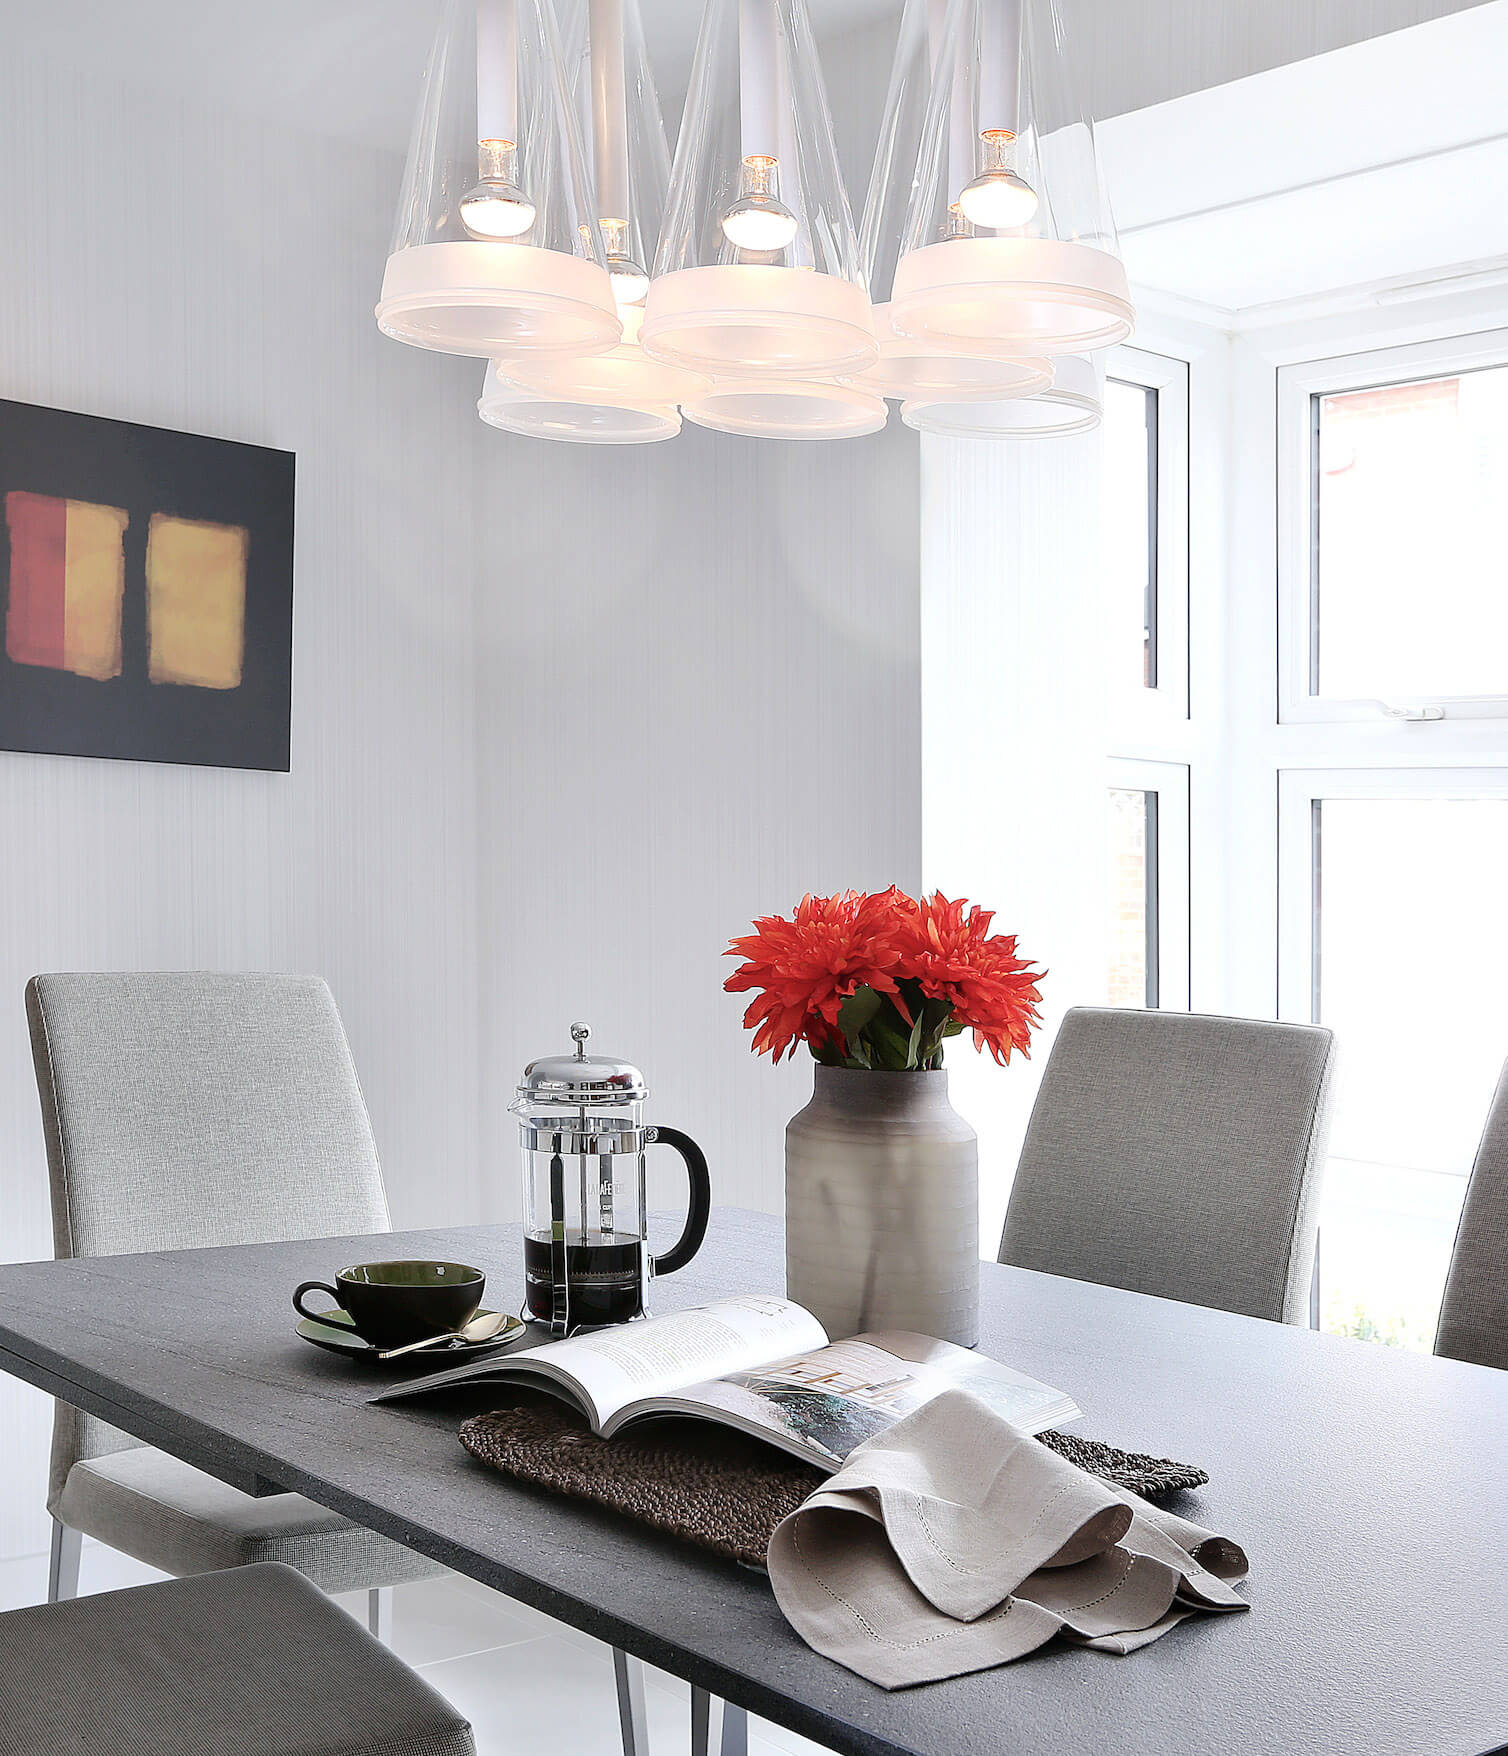 The dining room space, contained within the main open-plan area of the home, stands in neutral greys and whites, with a granite topped minimalist table at center. Flanked by lighter grey Parson chairs, the table stands beneath a set of conical pendant lights in glass.